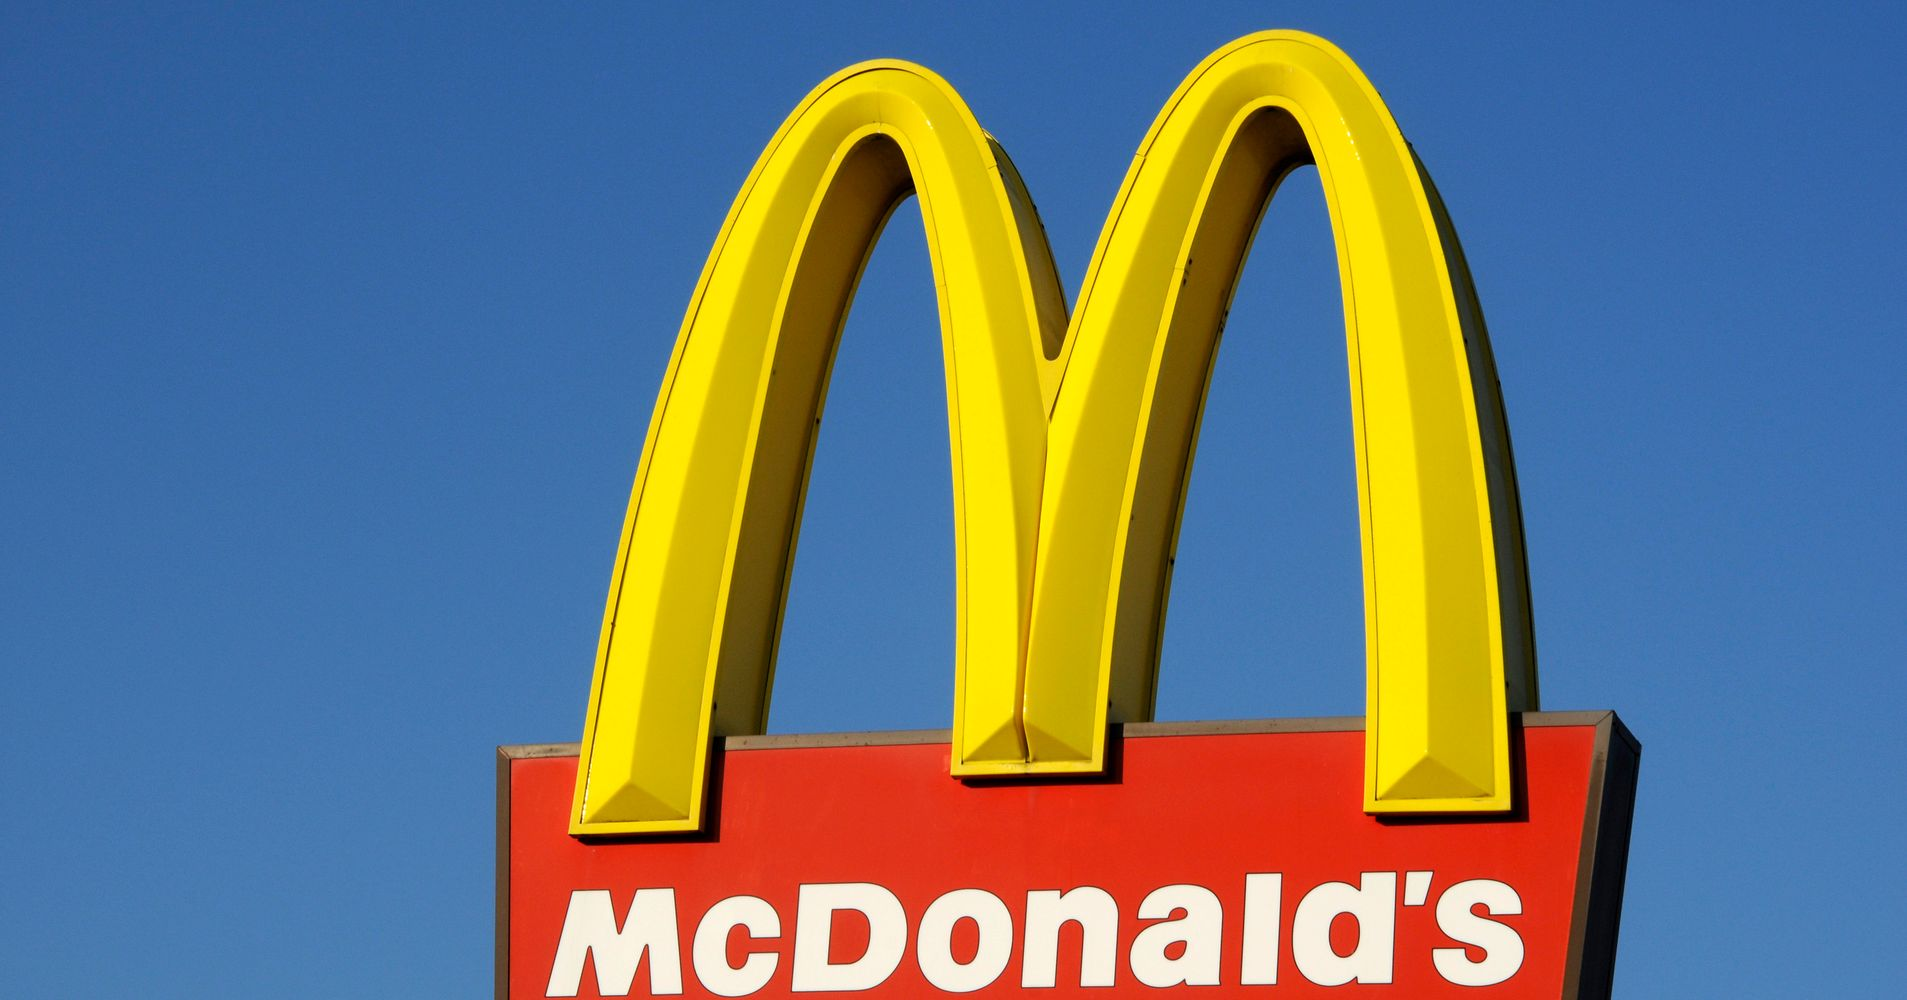 There's A Subliminal Message Behind McDonald's Golden ...